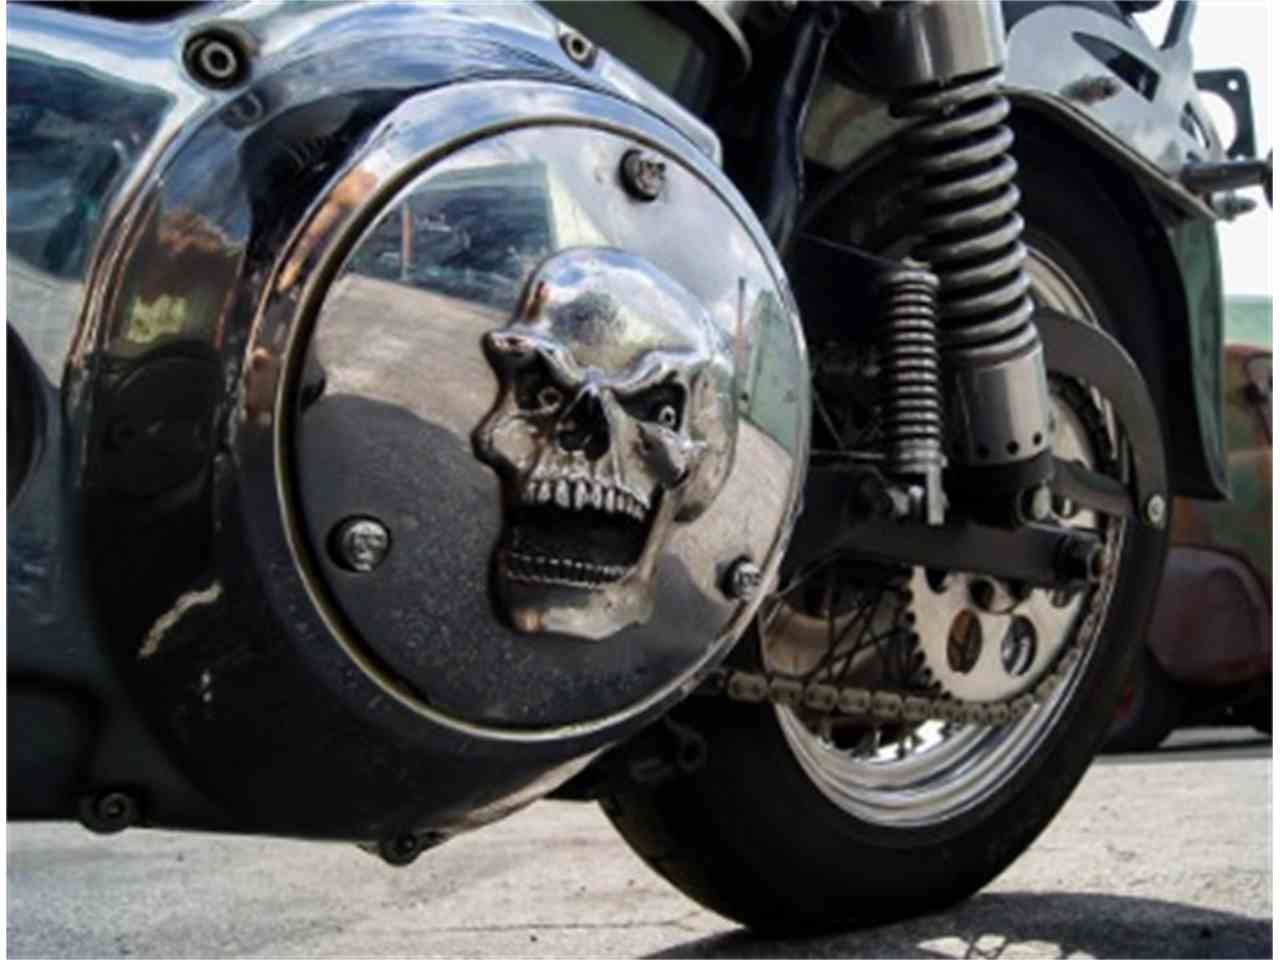 Large Picture of '82 Harley Davidson located in Florida Offered by Sobe Classics - FVQR